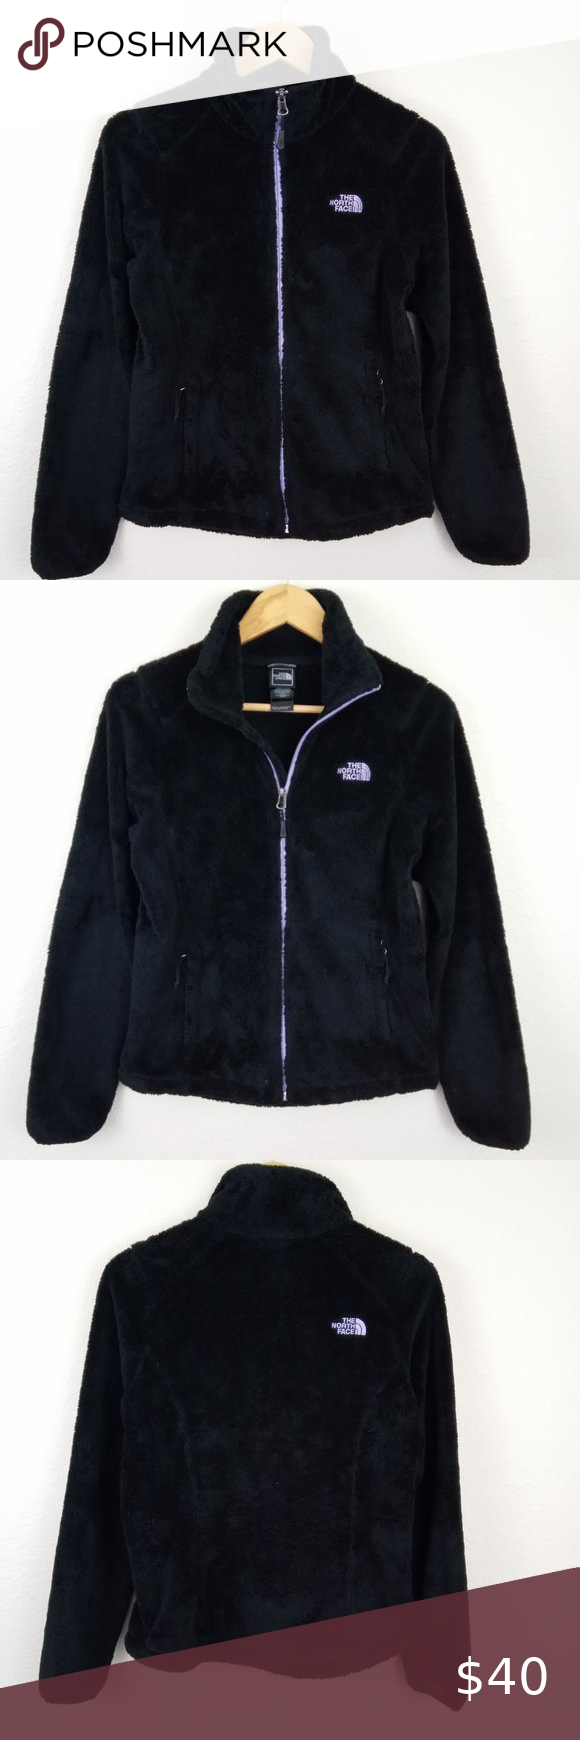 The North Face Osito Fleece Jacket Small The North Face Osito Fleece Jacket With Matching Lavender Zipper And Logo In 2020 Fleece Jacket Jackets North Face Jacket [ 1740 x 580 Pixel ]